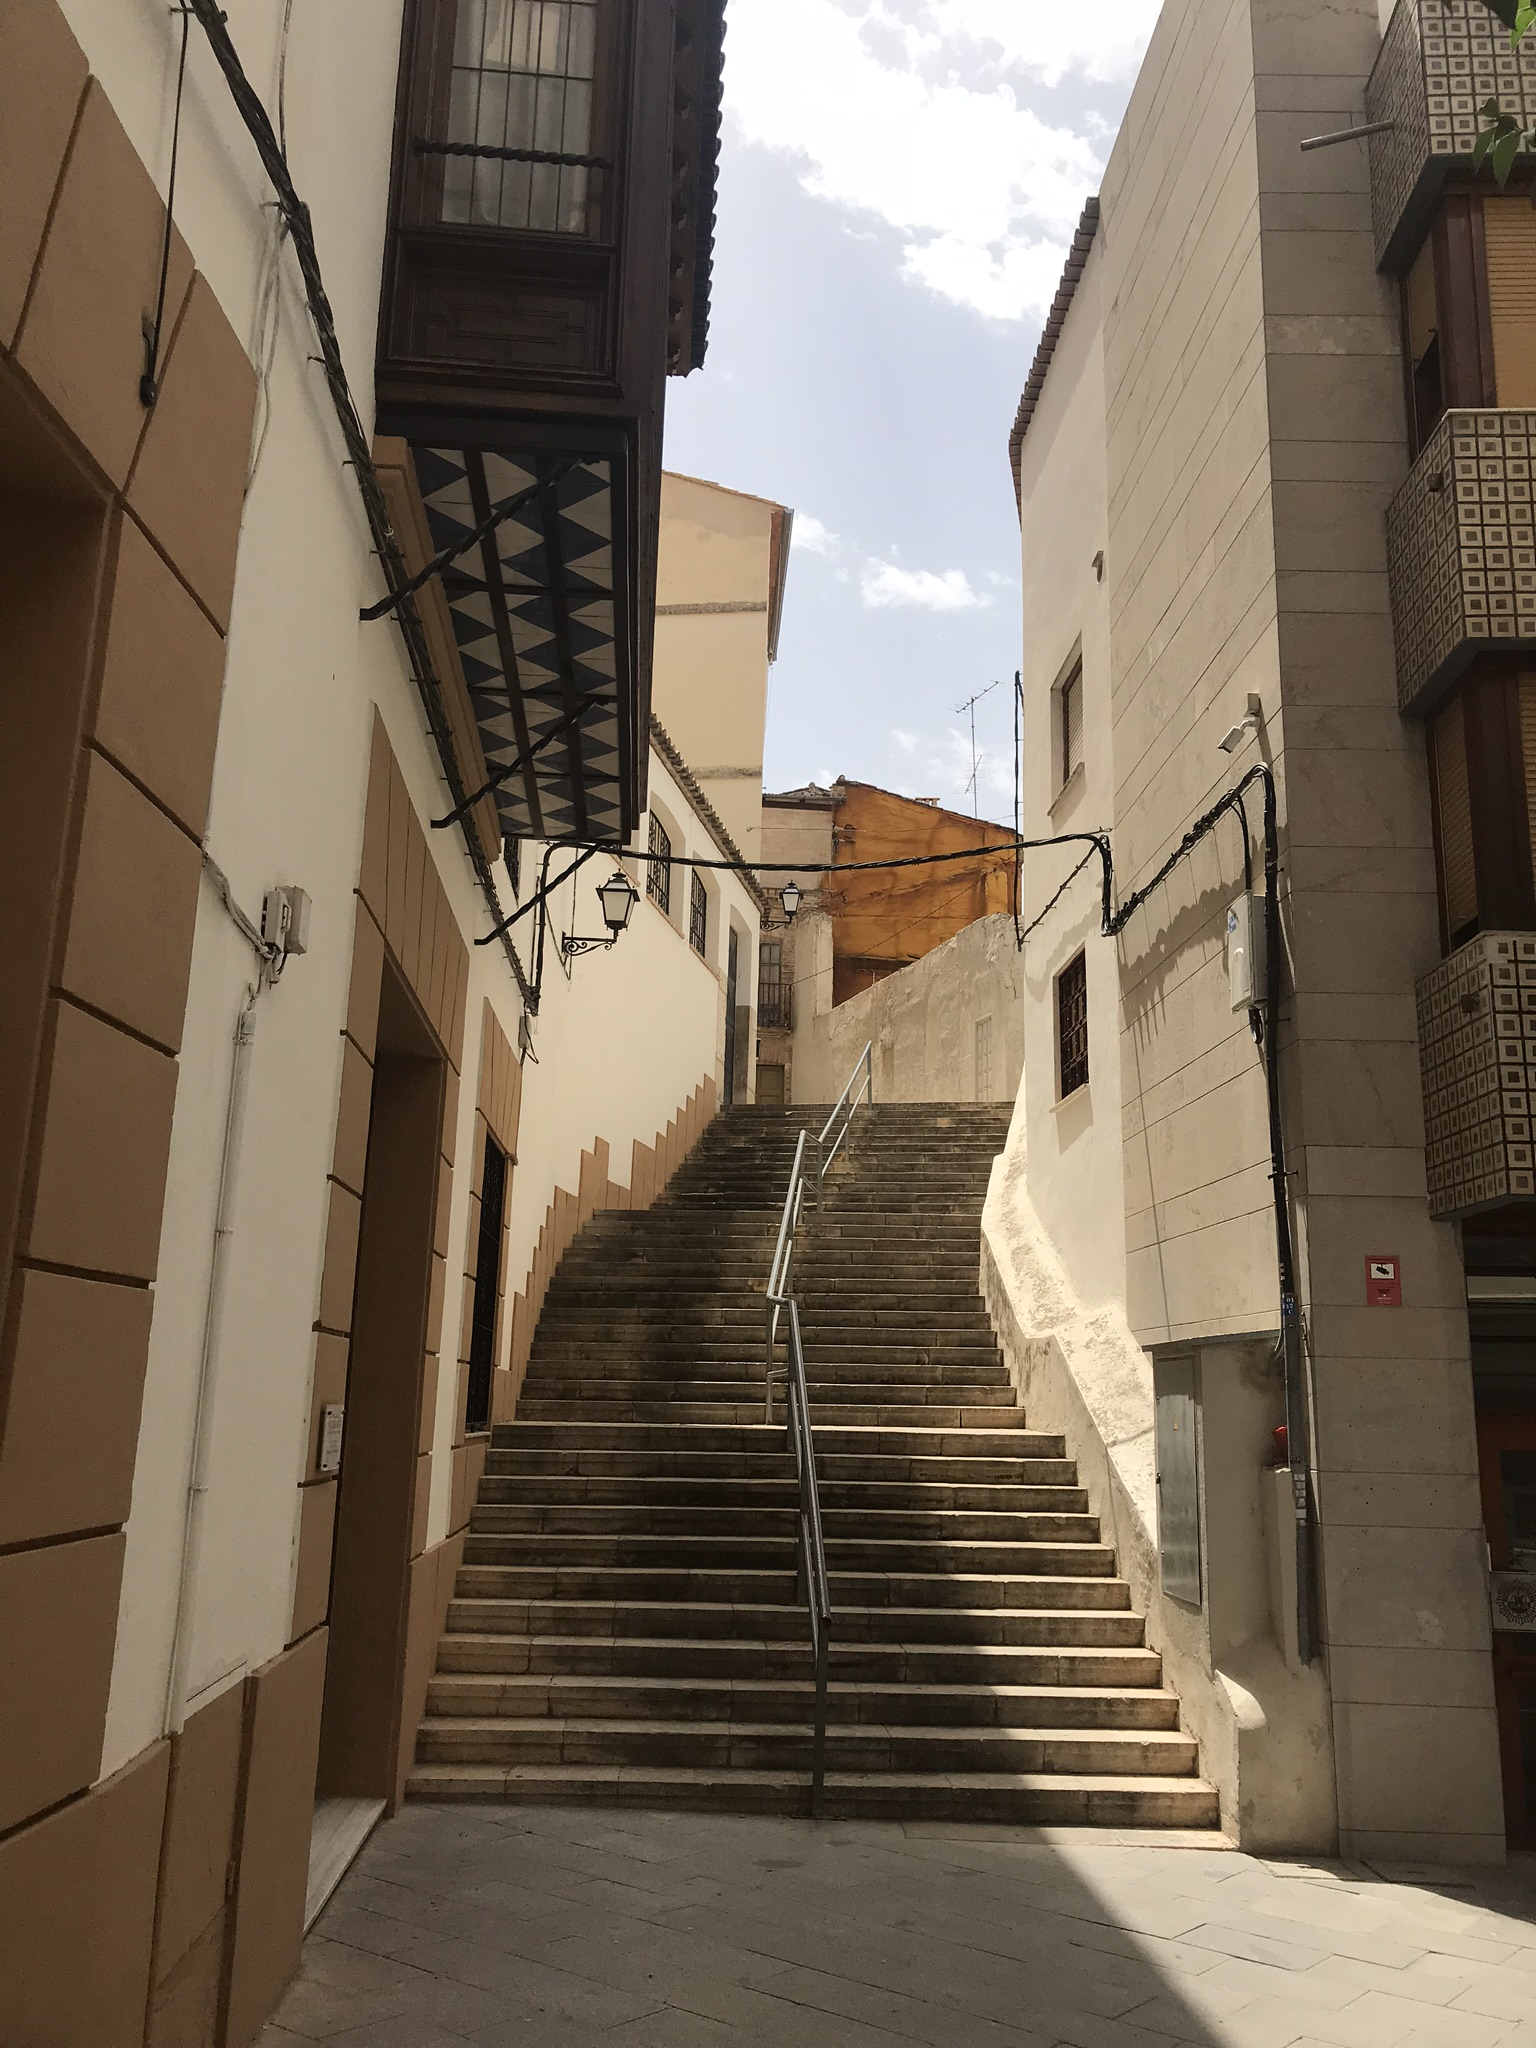 Spain 2018 Day 3 - walkway